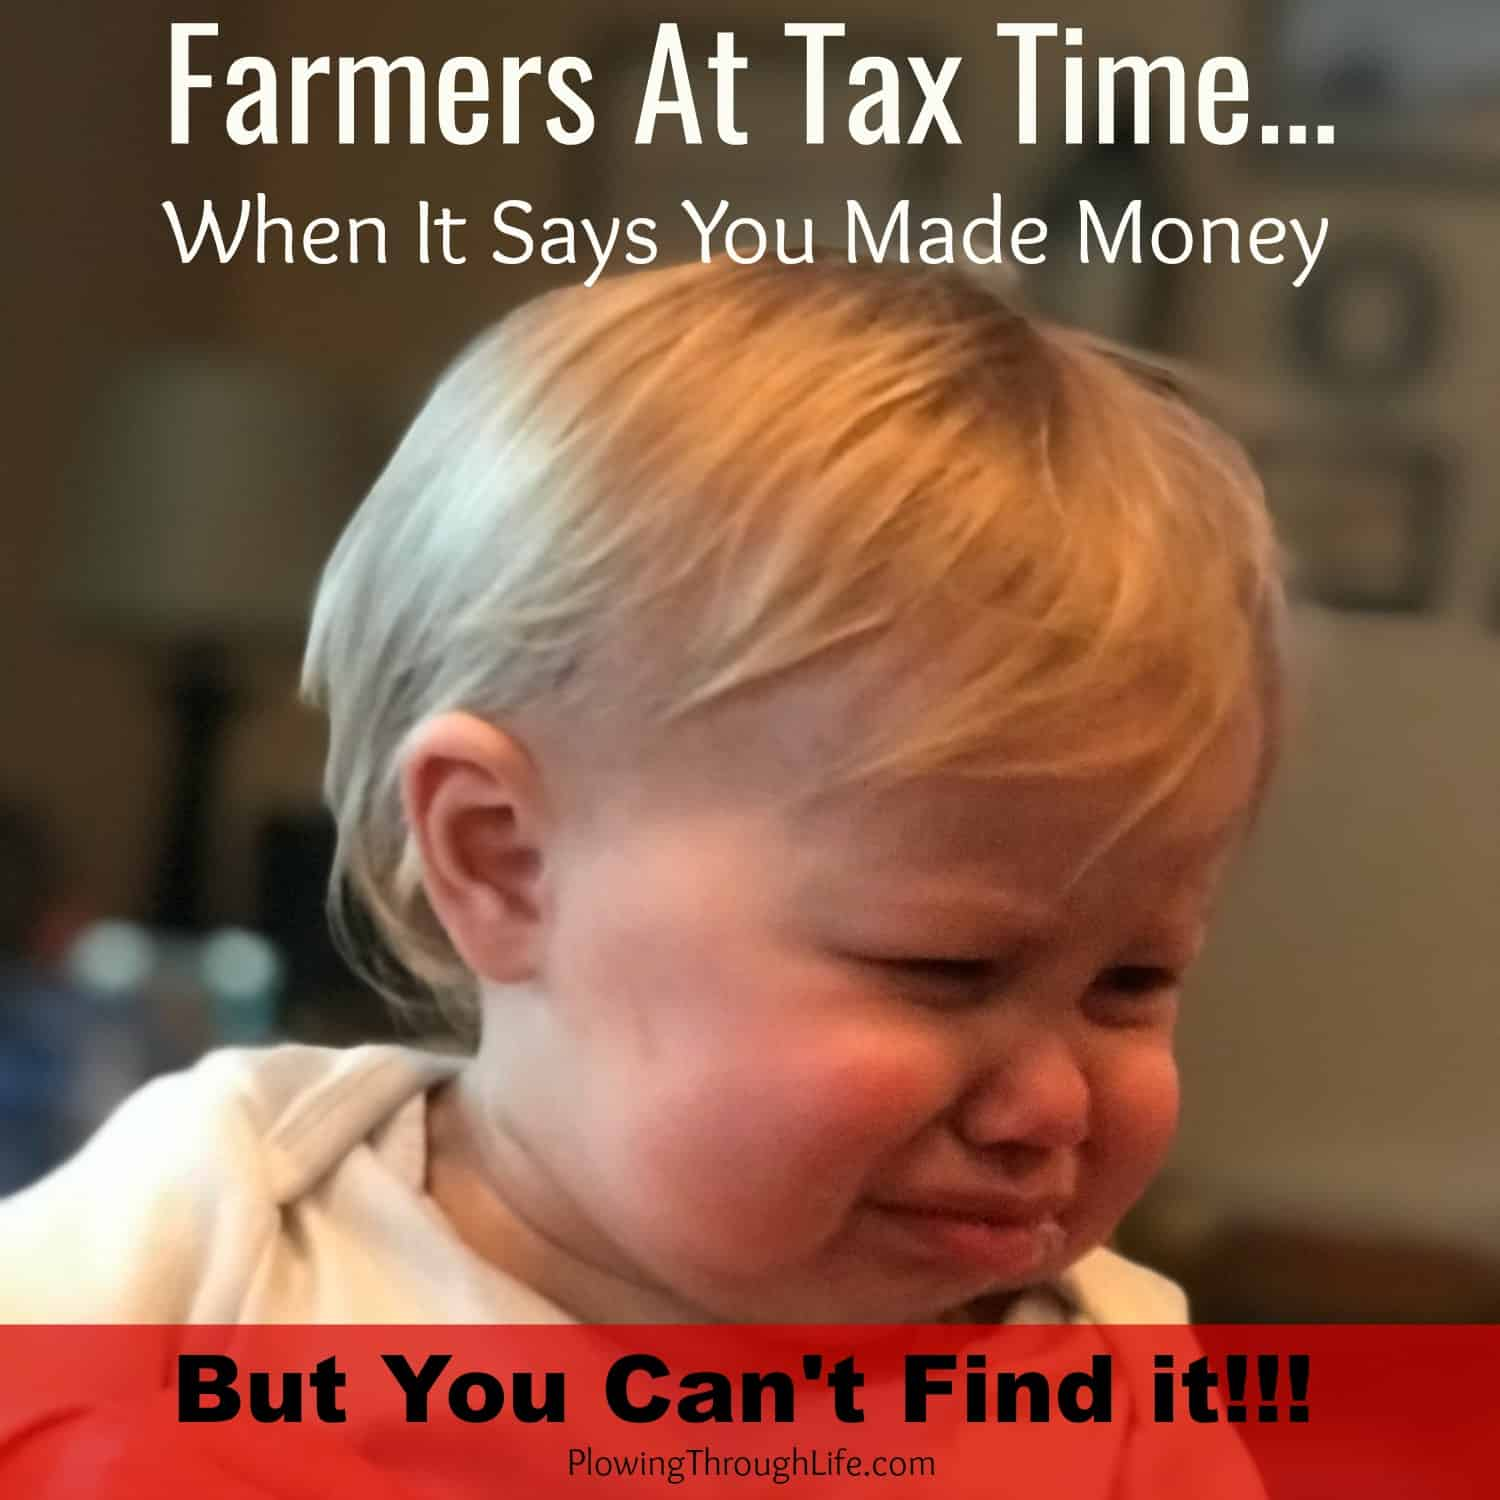 farmer at tax time with baby crying meme